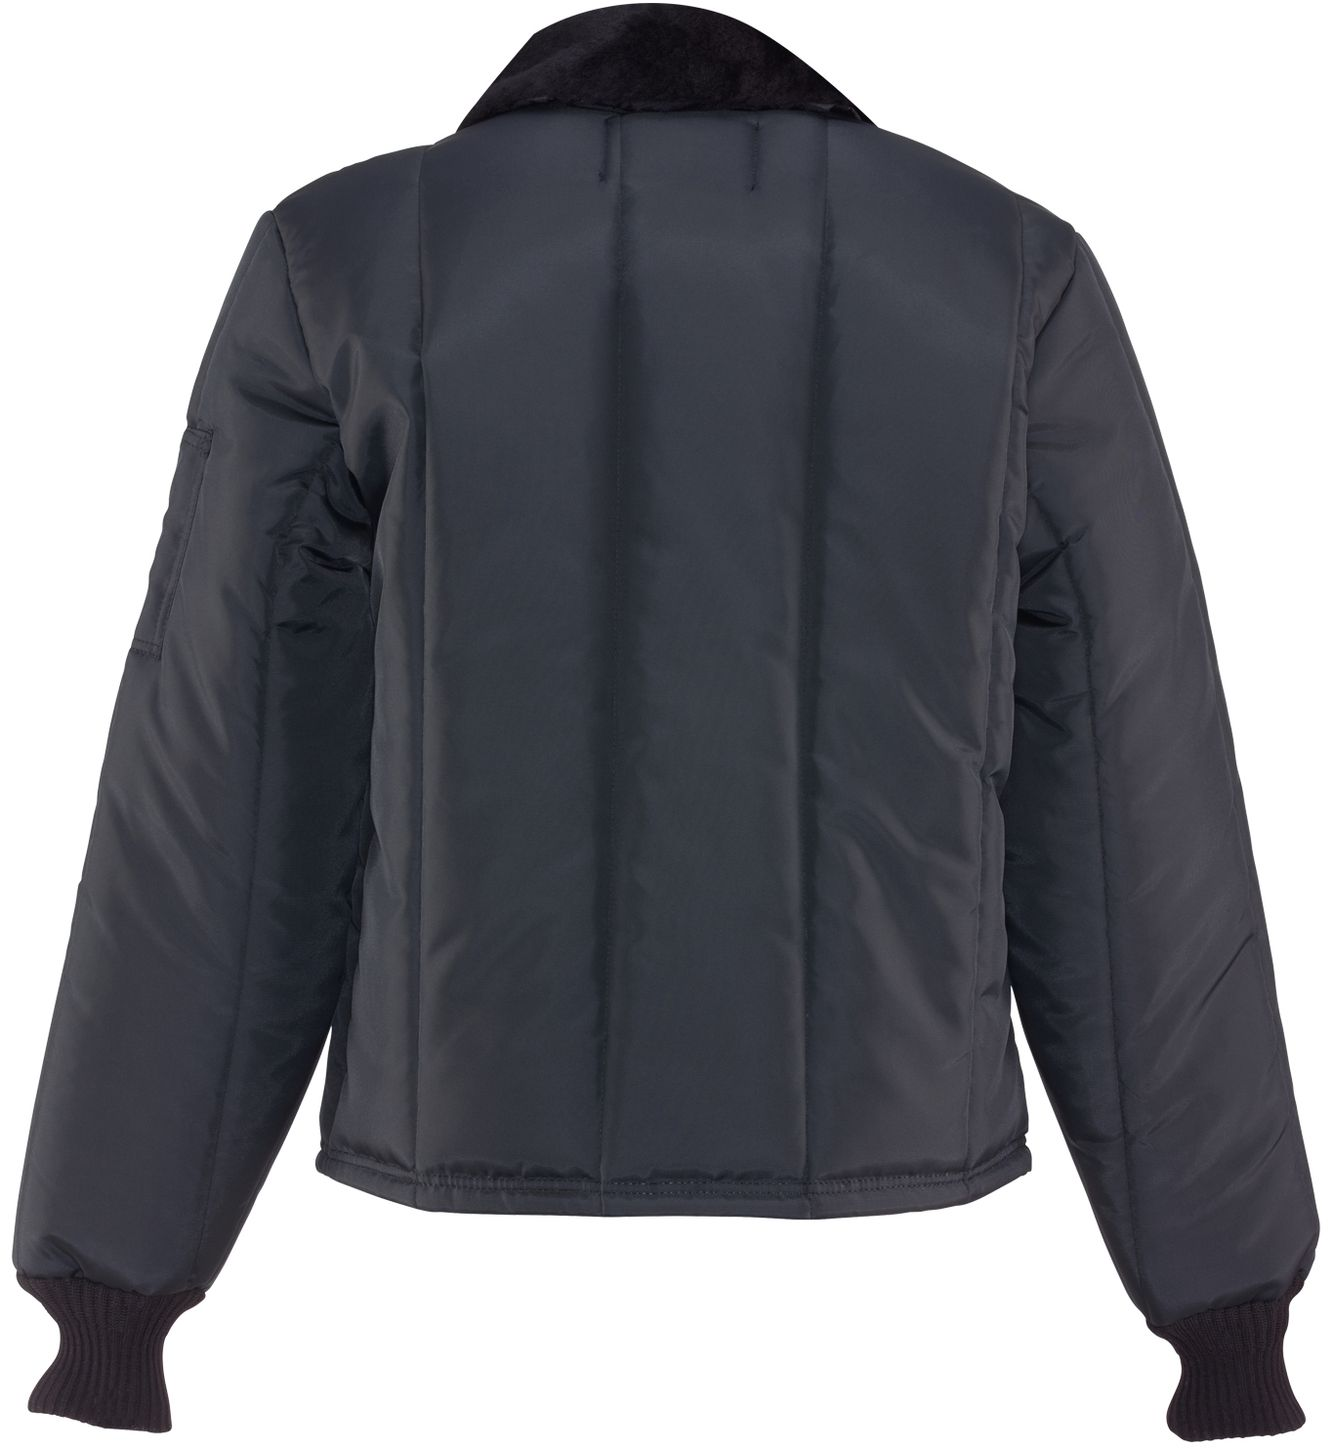 RefrigiWear 0359 Iron-Tuff Cold Weather Work Jacket Back